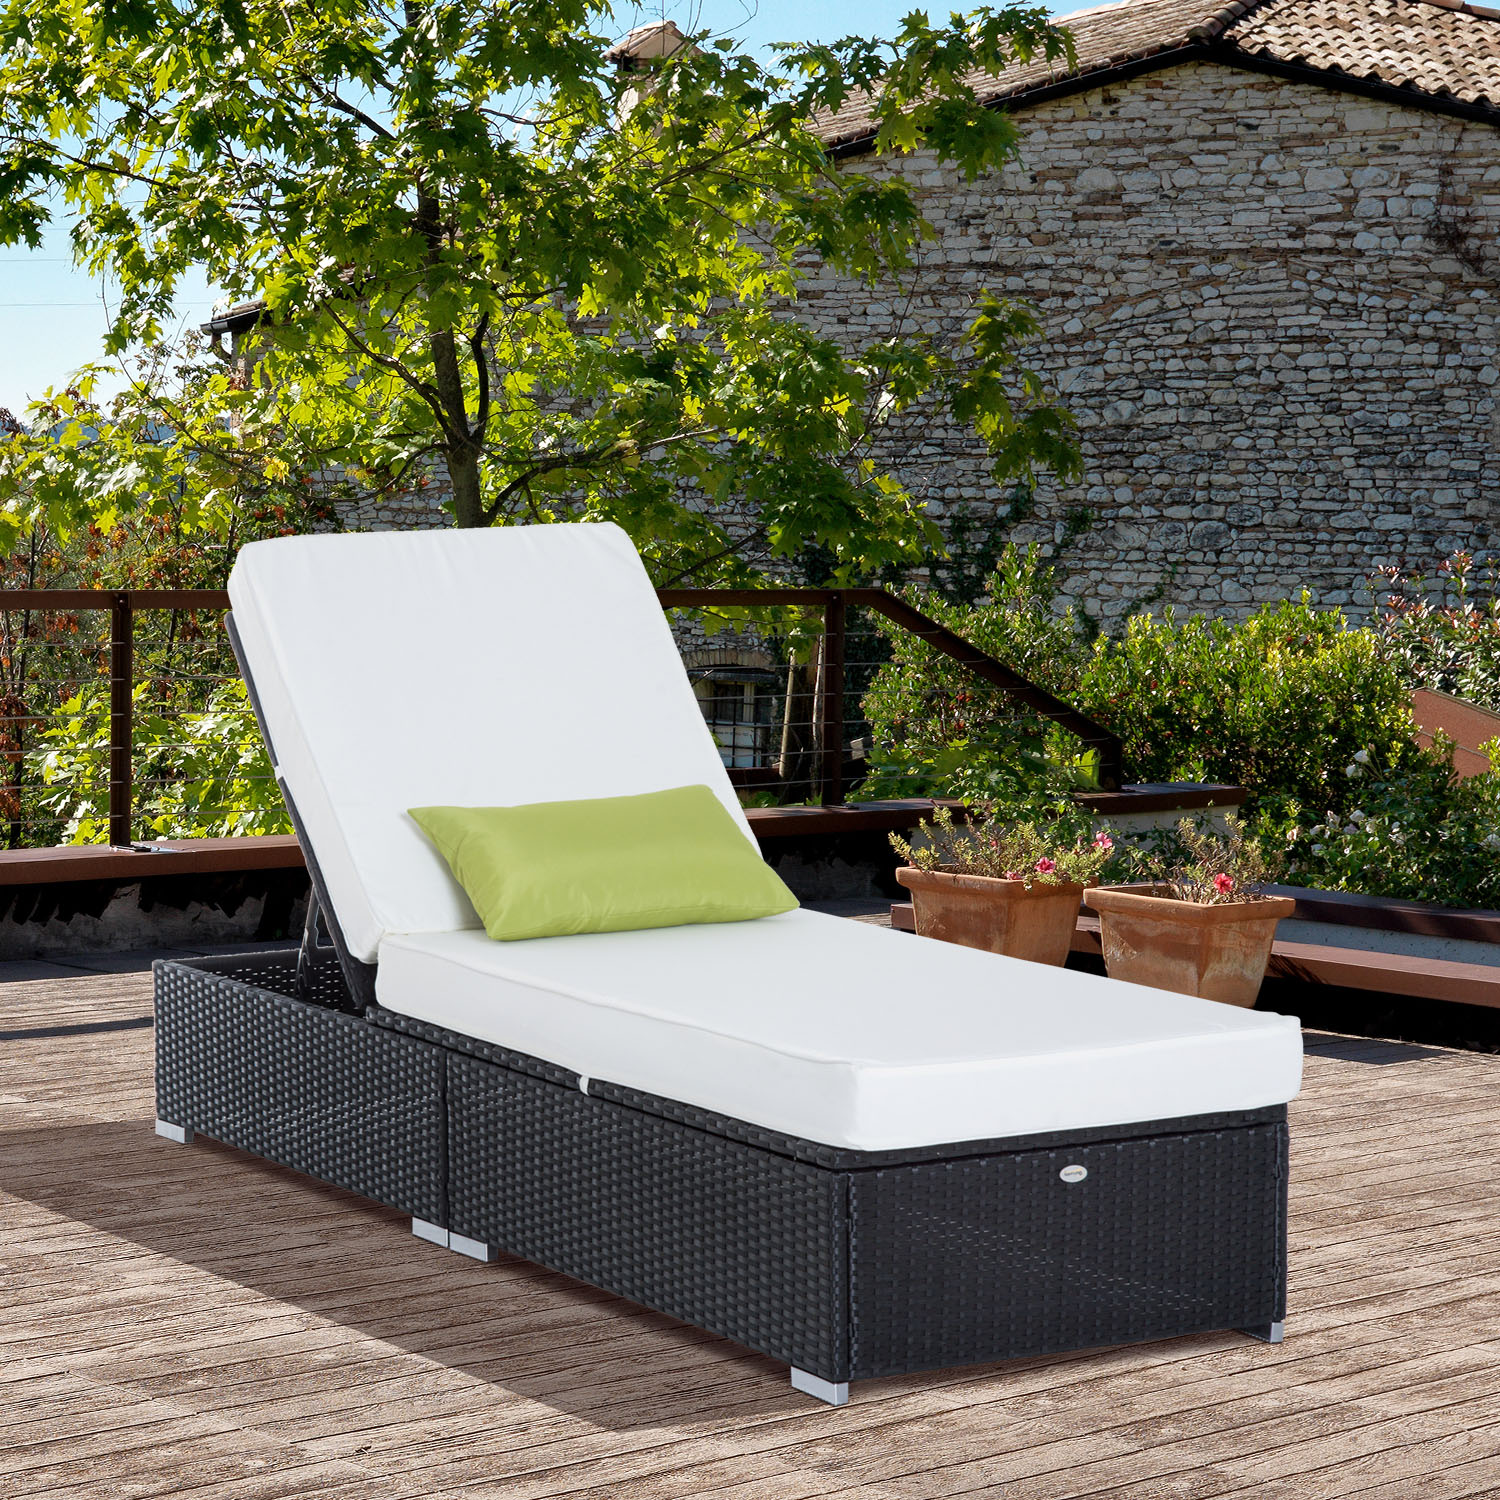 Image of CAD $242.99 Outsunny Rattan Lounge Outdoor Sun Lounger Patio Wicker Bed Garden Recliner Chaise Sofa Furniture / Adjustable Canada 25093571169